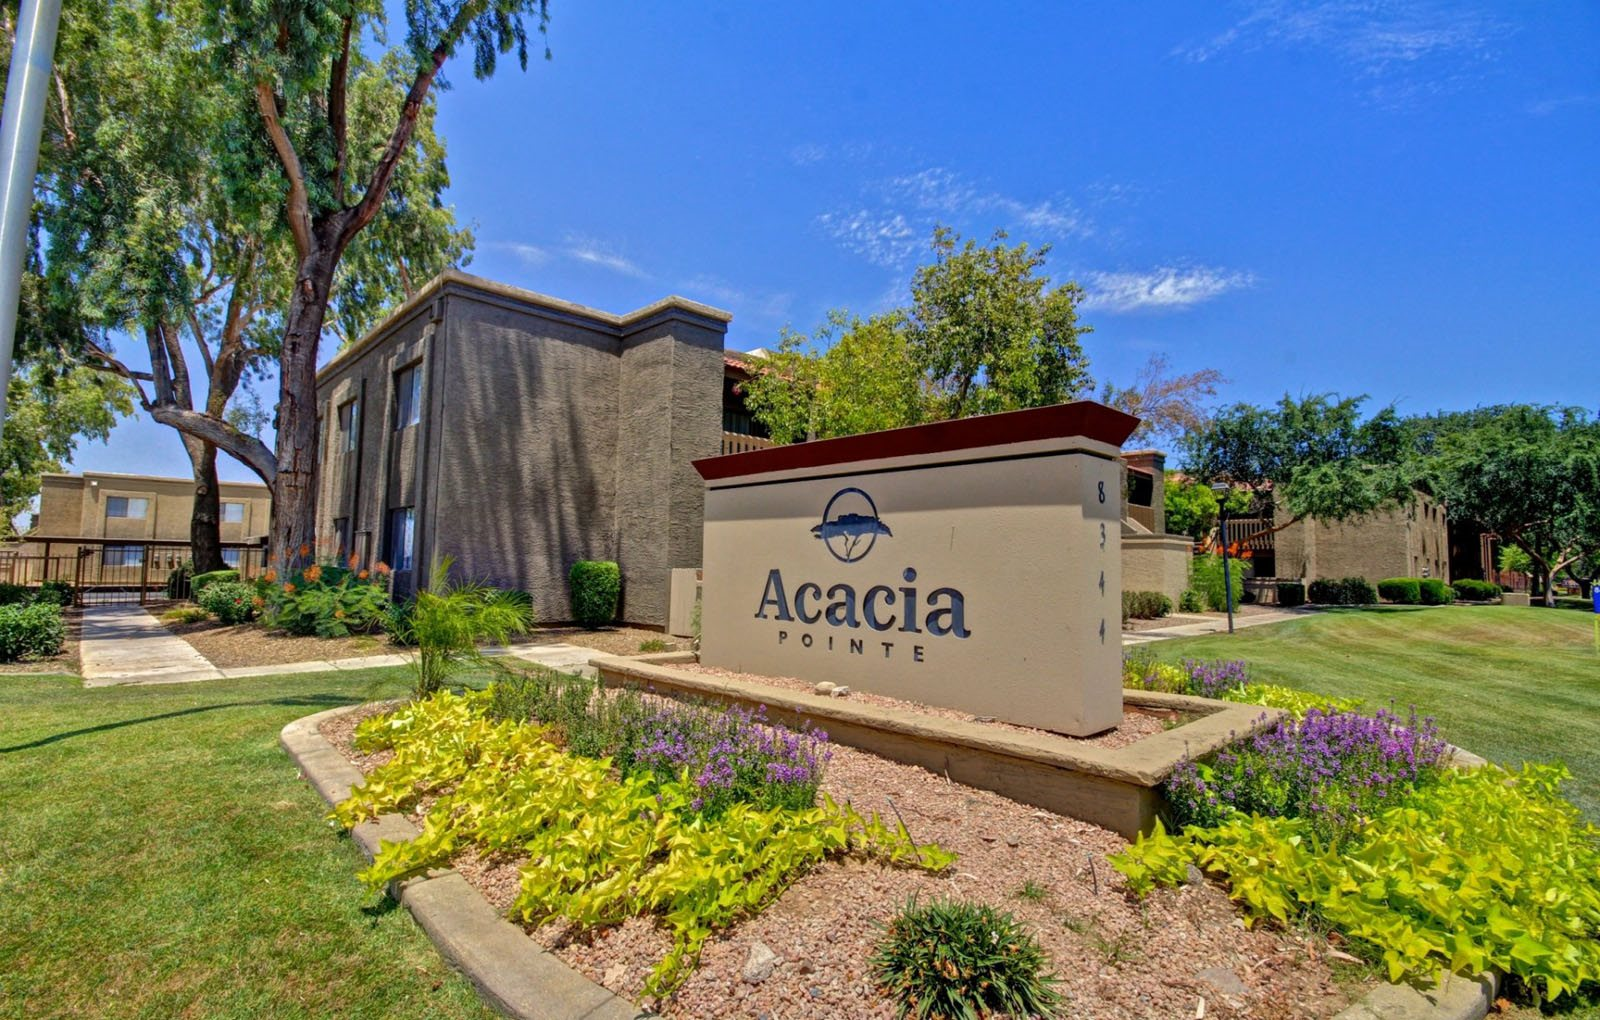 Acacia Pointe Apartments in Glendale, AZ signage